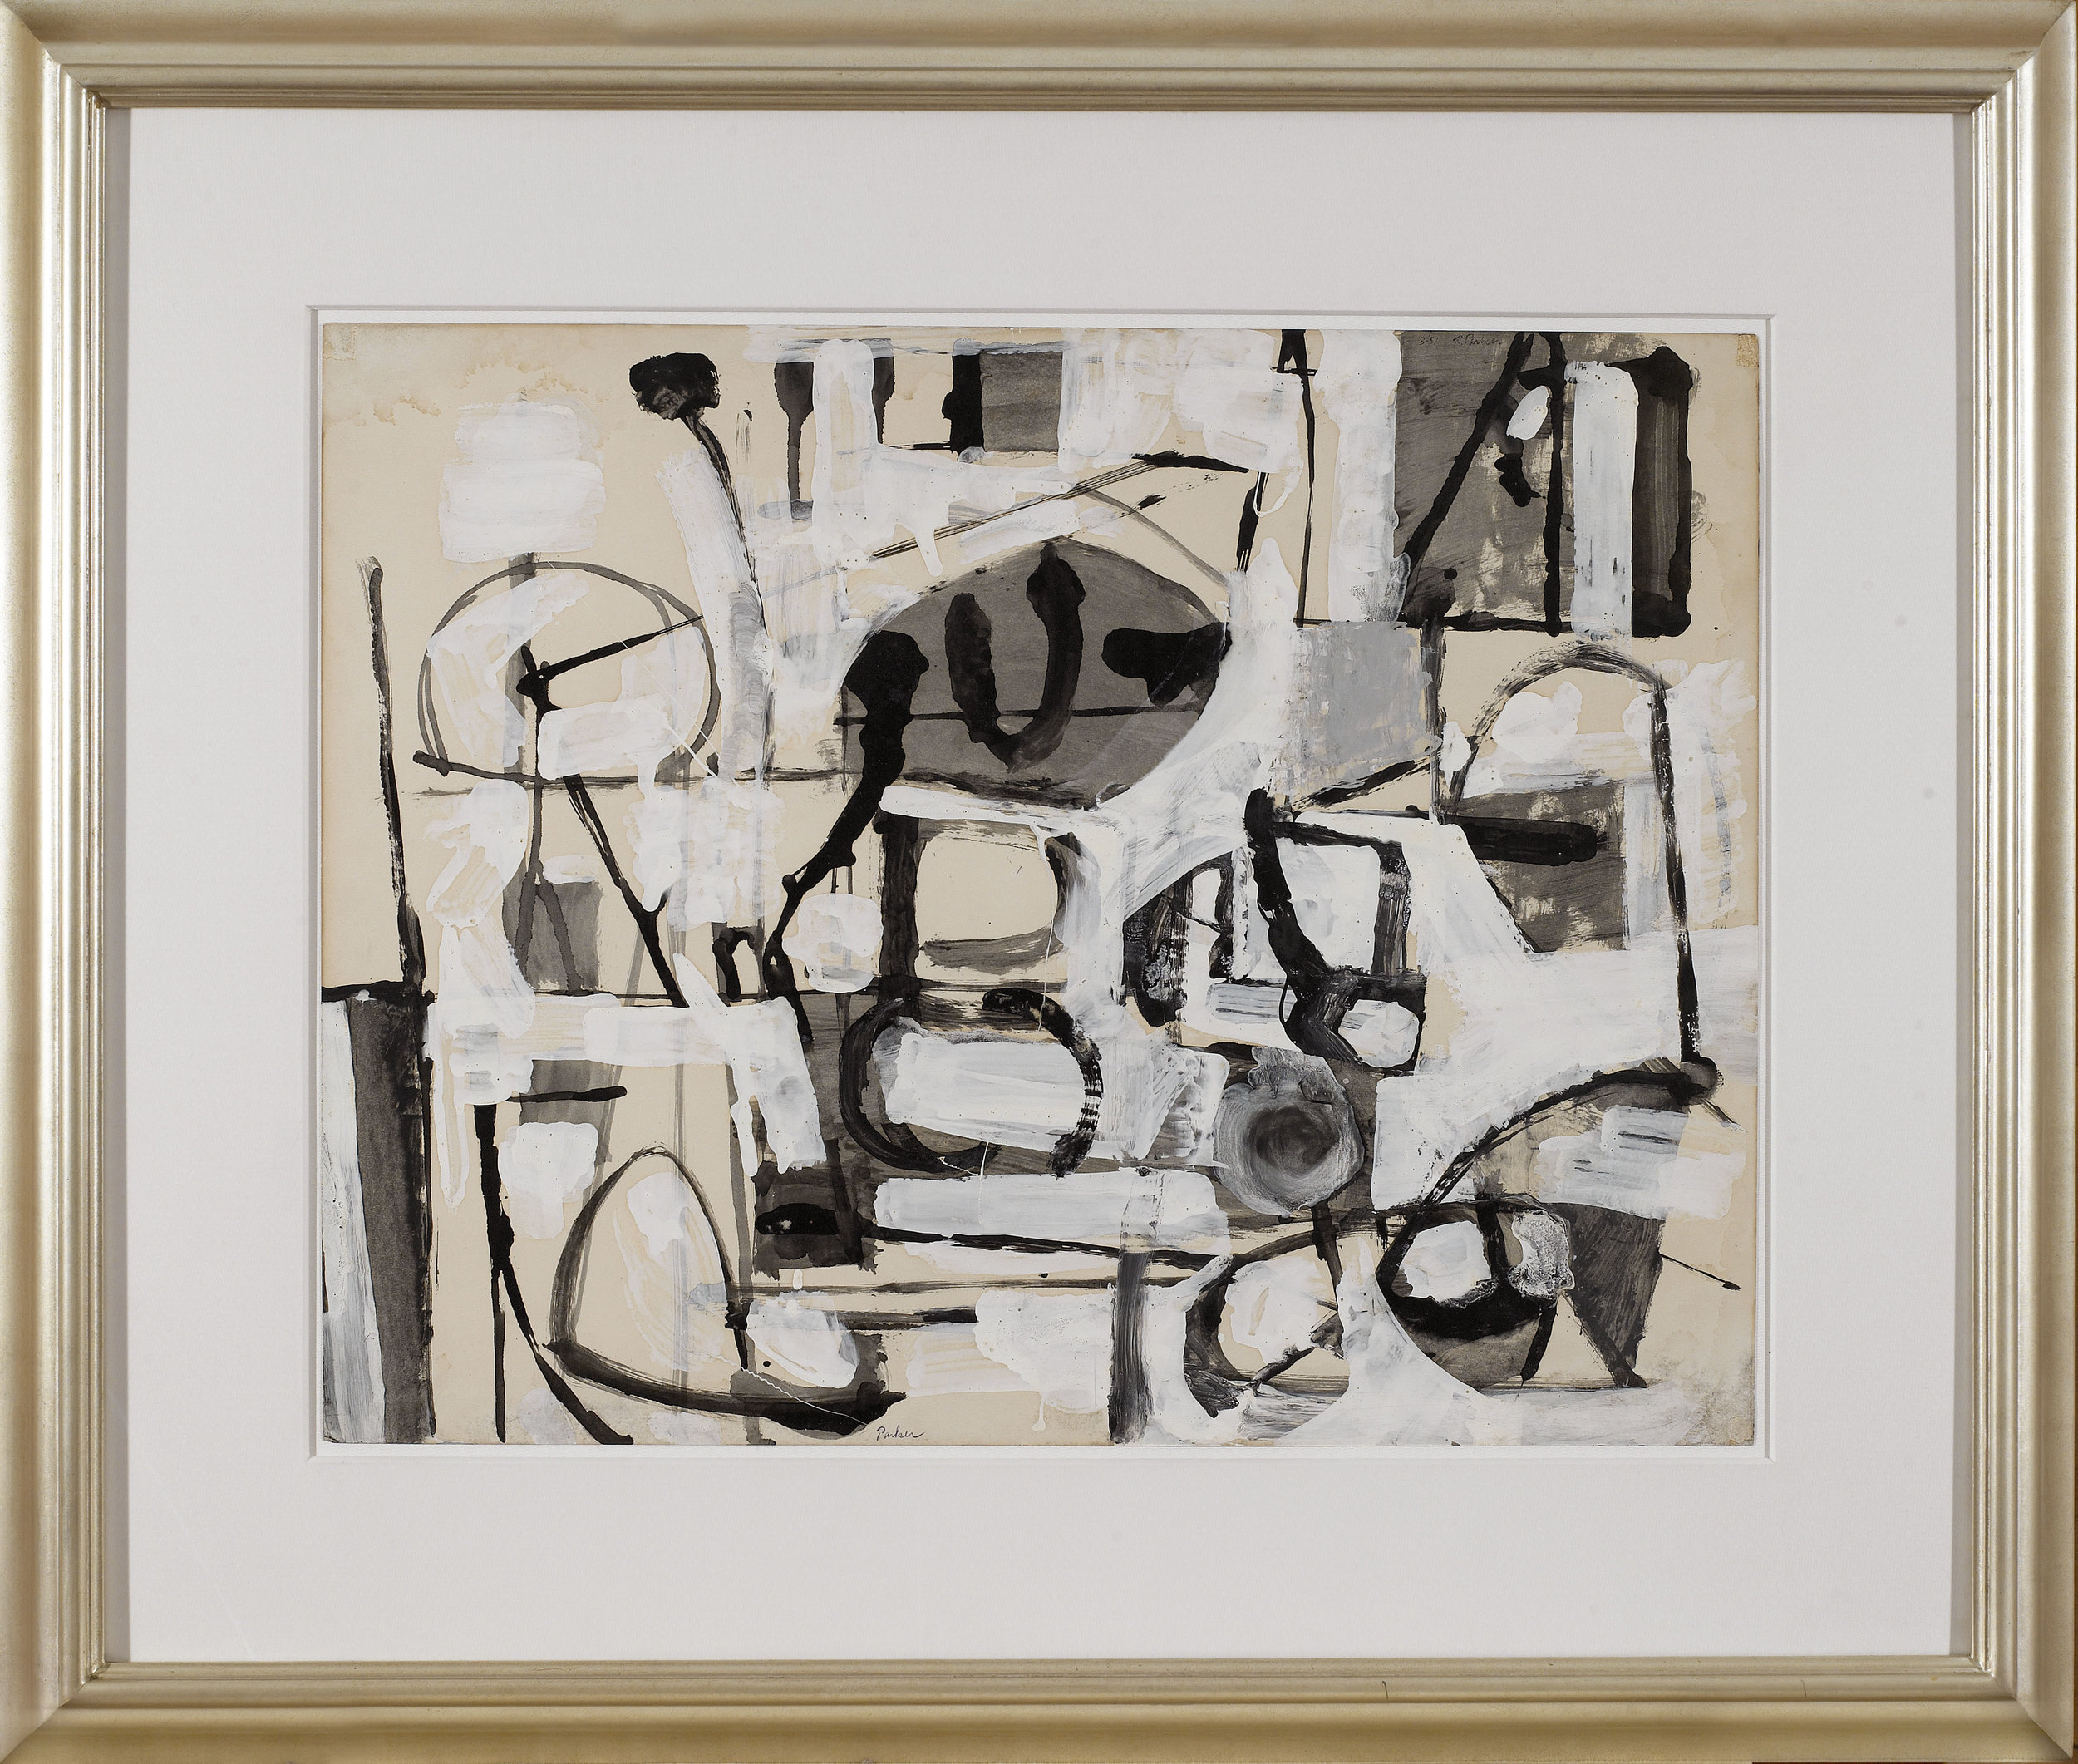 Untitled, 1951 , Ink and gouache on paper, 21 1/2 x 27 3/4 inches